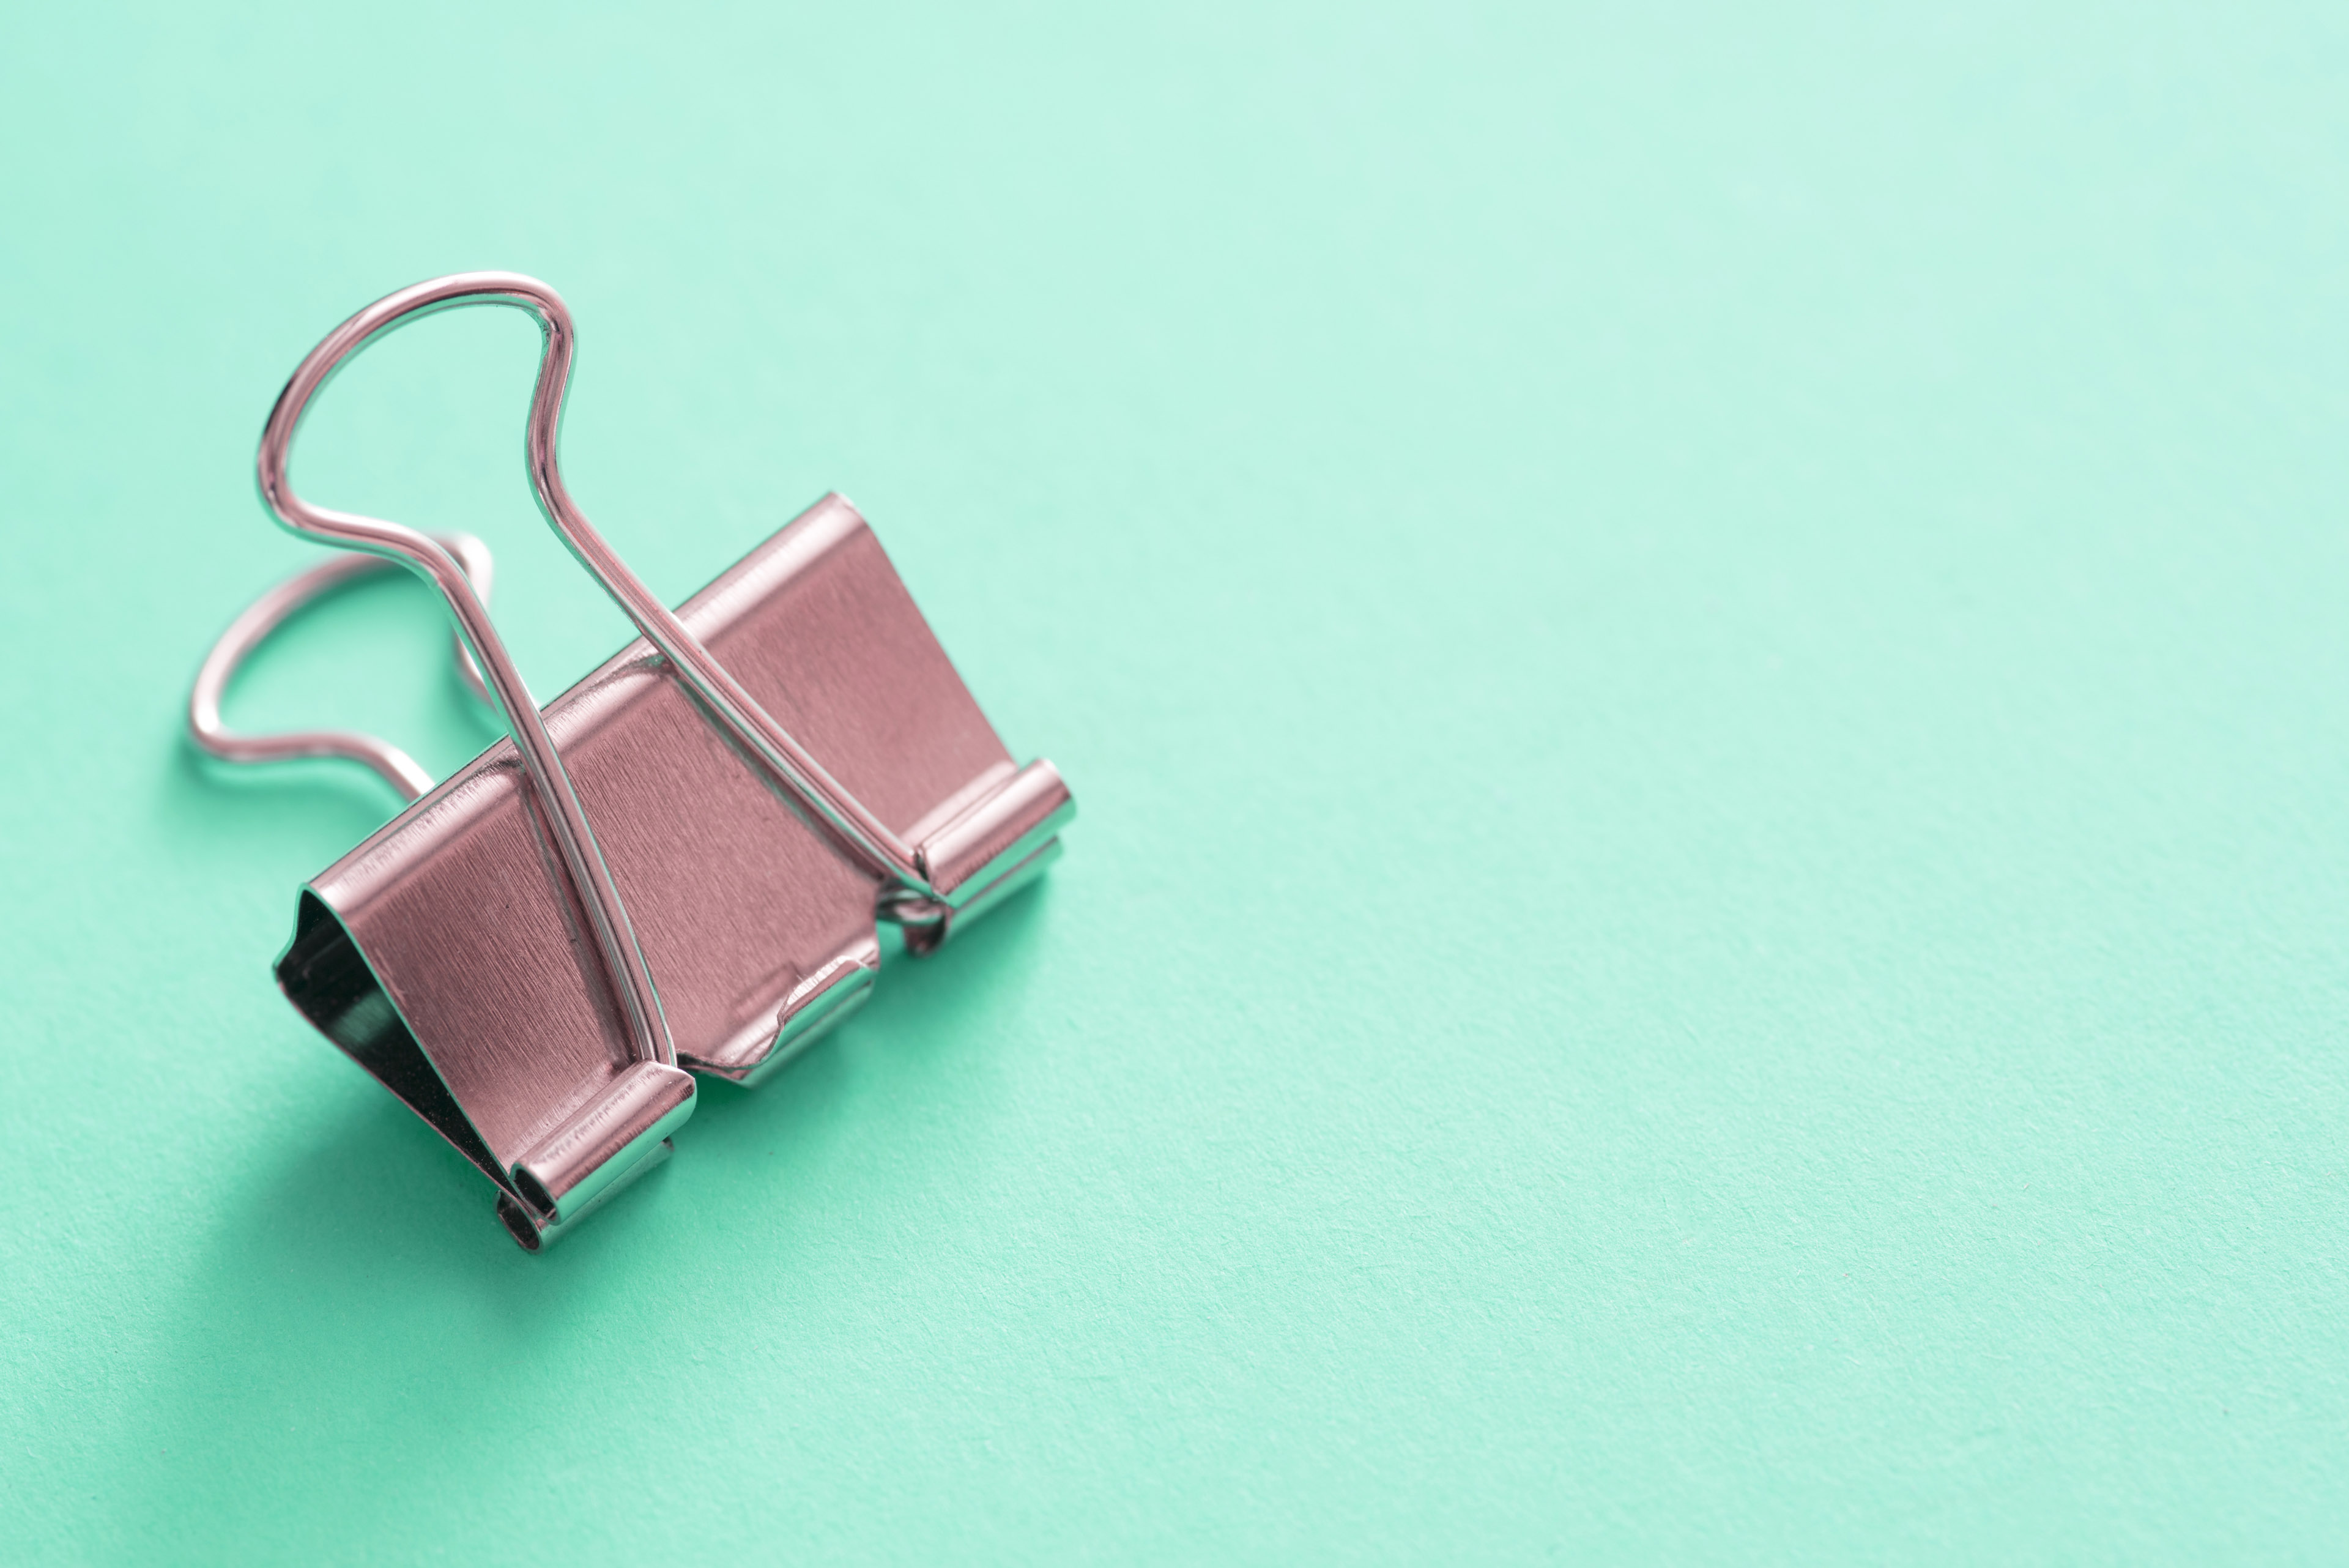 Single metal bulldog clip against mint background